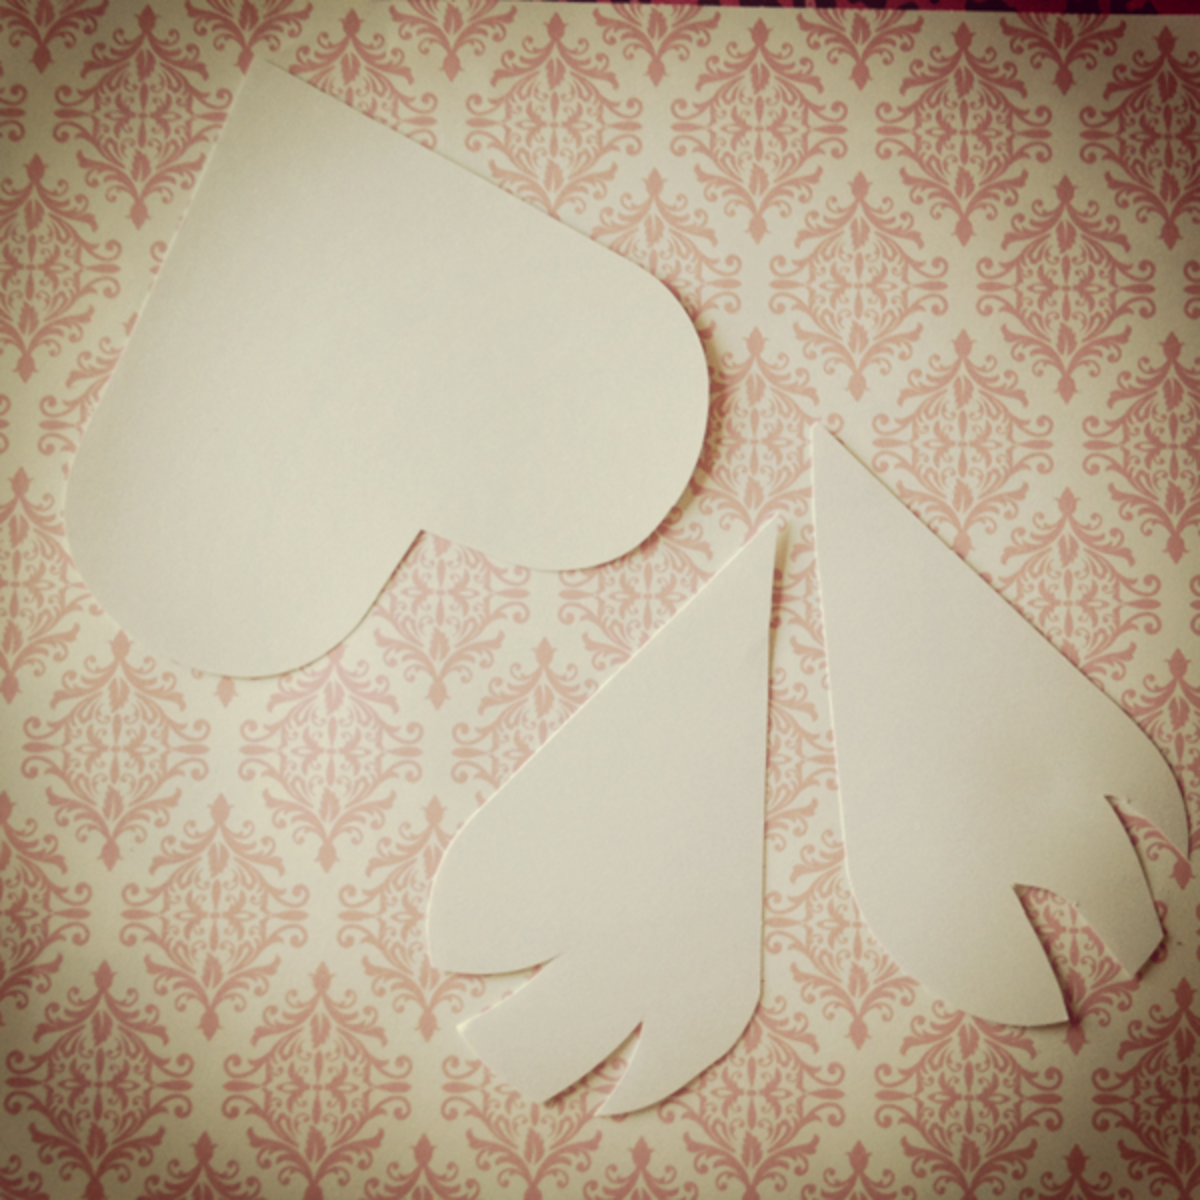 Turn a diecut cardstock heart into a pair of owl wings with a few quick snips!